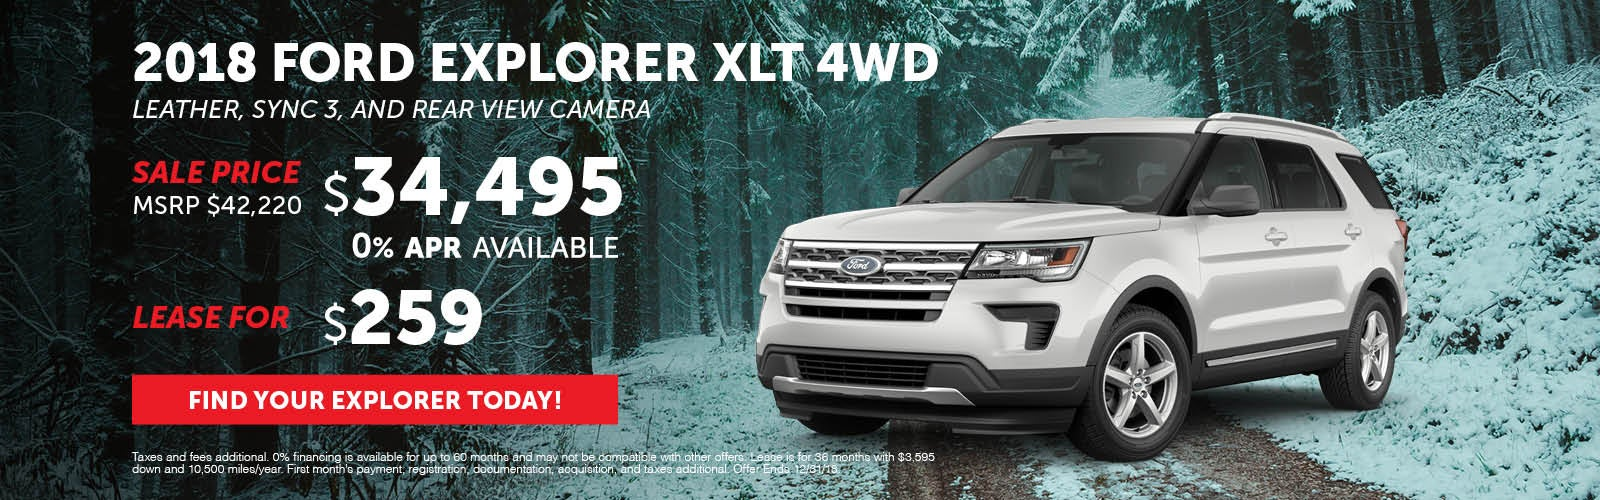 2018 Ford Explorer XLT | Stoneham Ford Specials Stoneham, MA (Page 3)